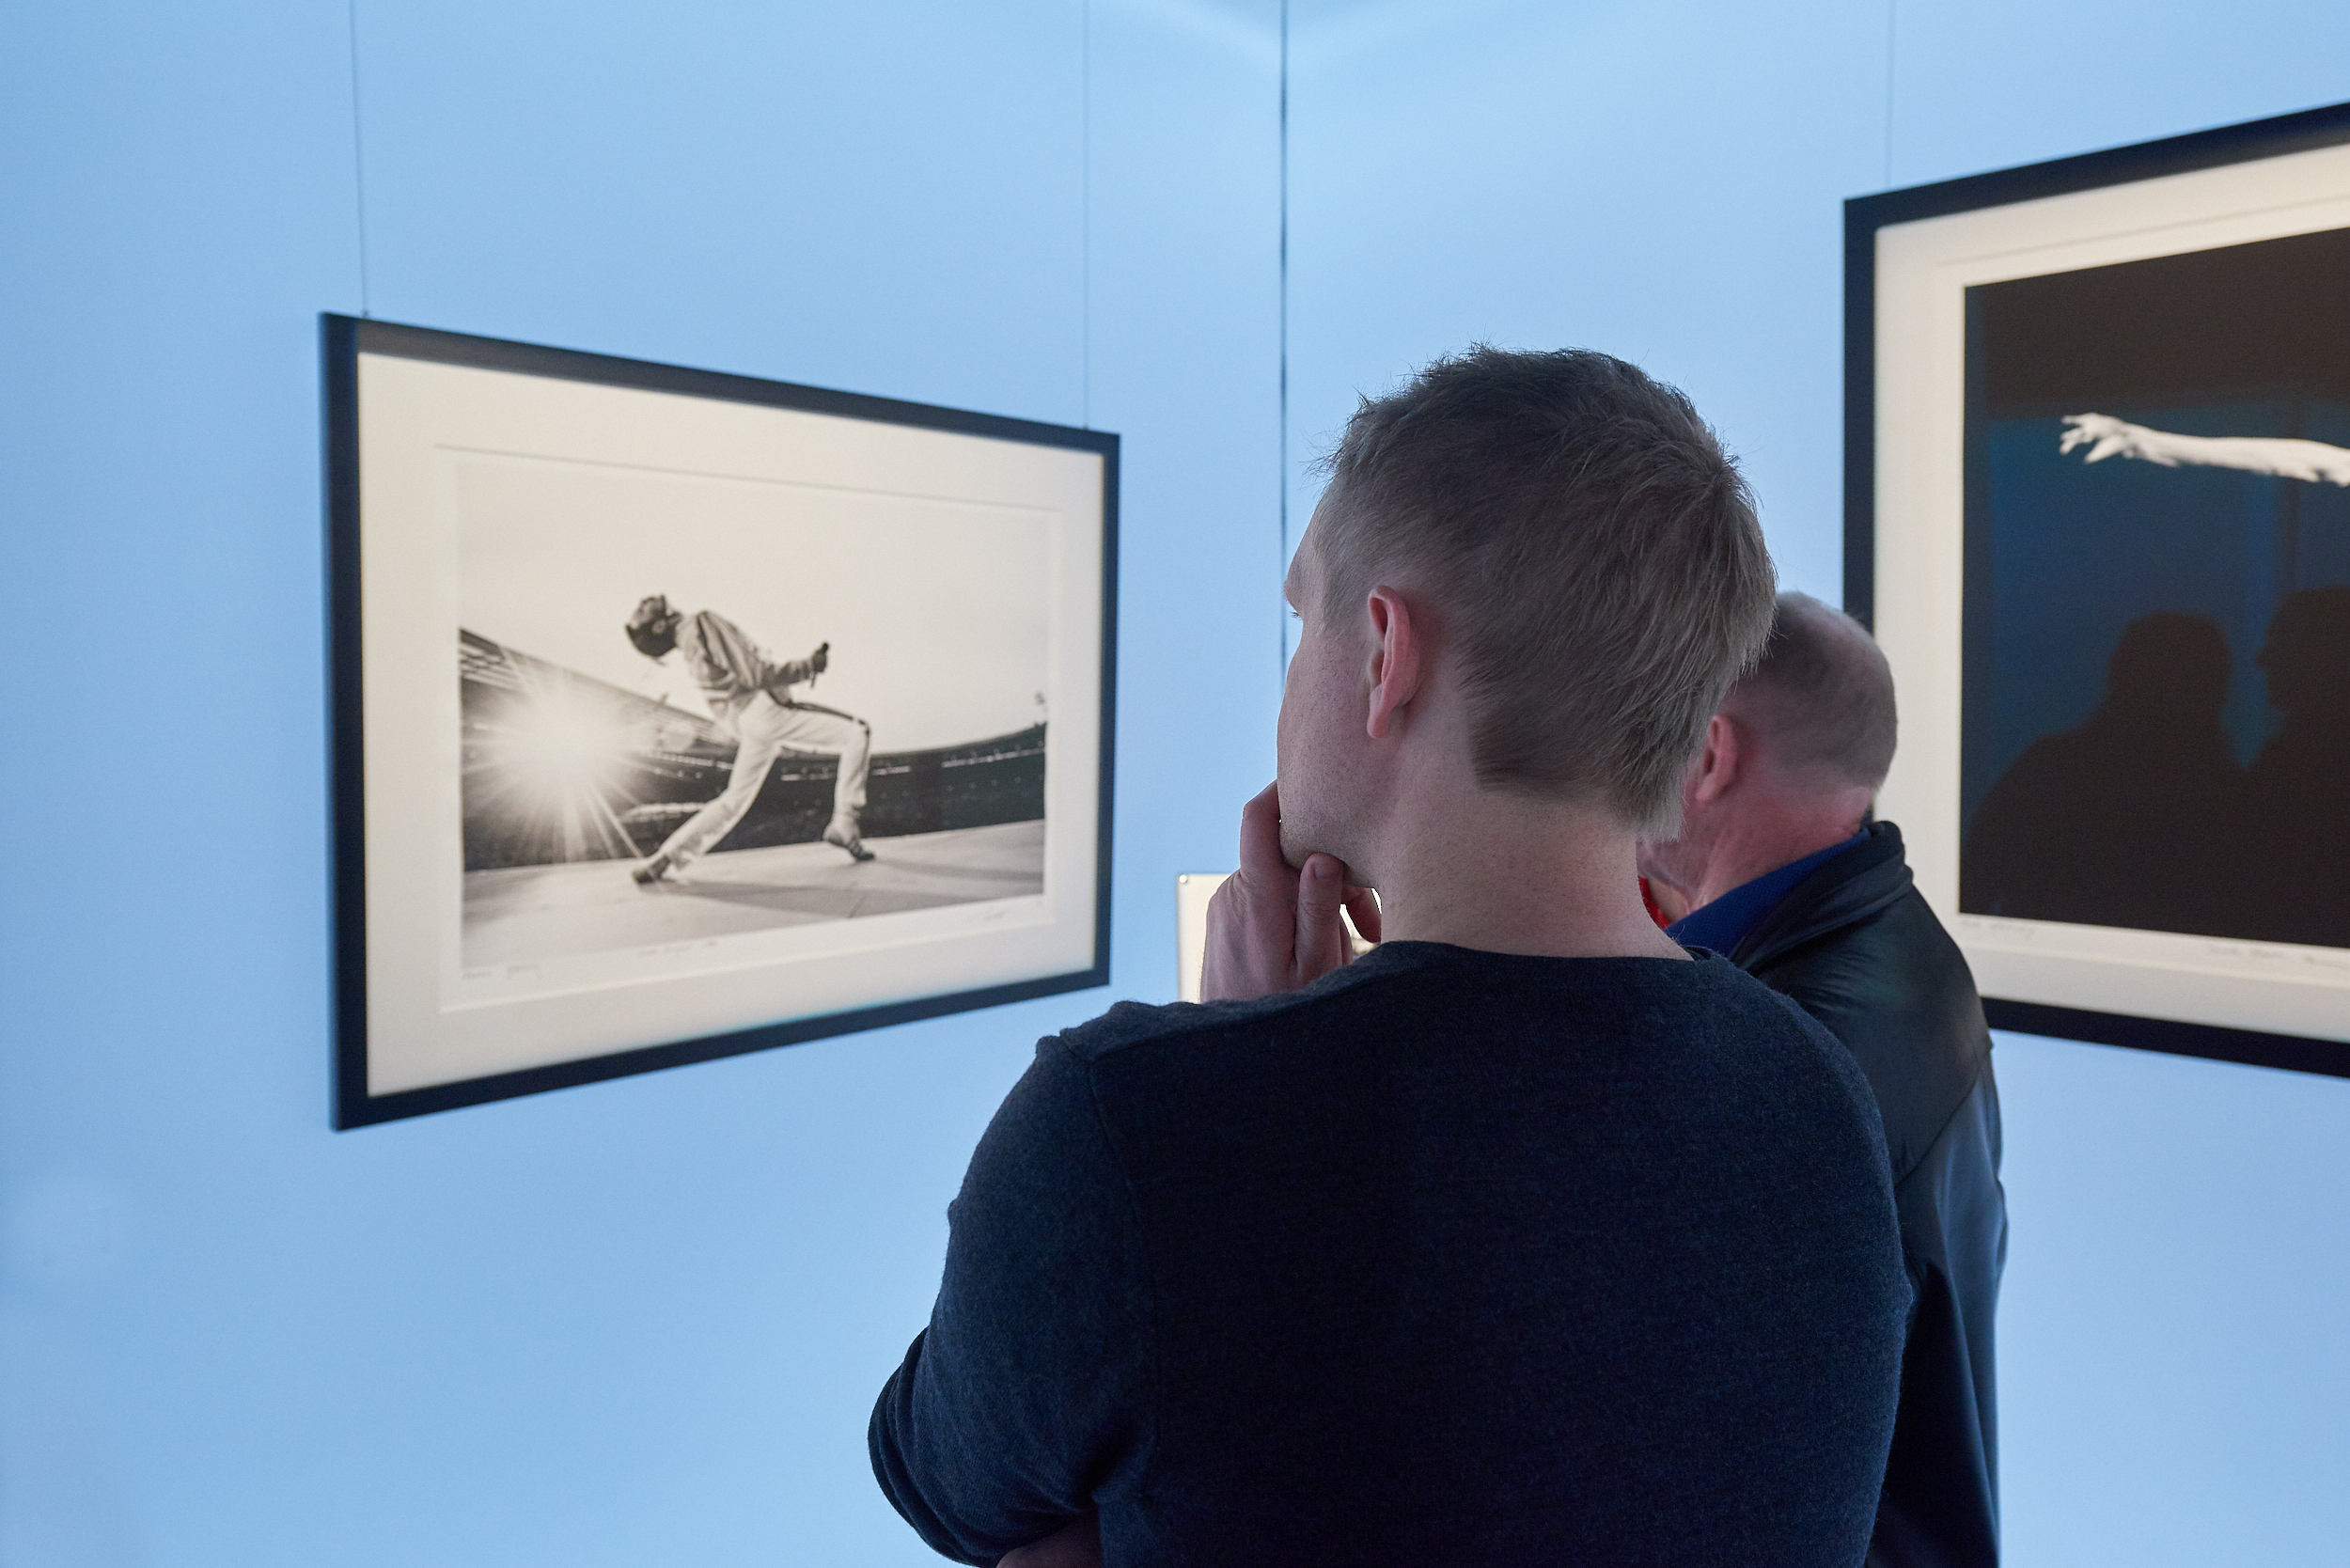 Neal-Preston-exhibition_-_Peter-L-Nielsen_65.jpg